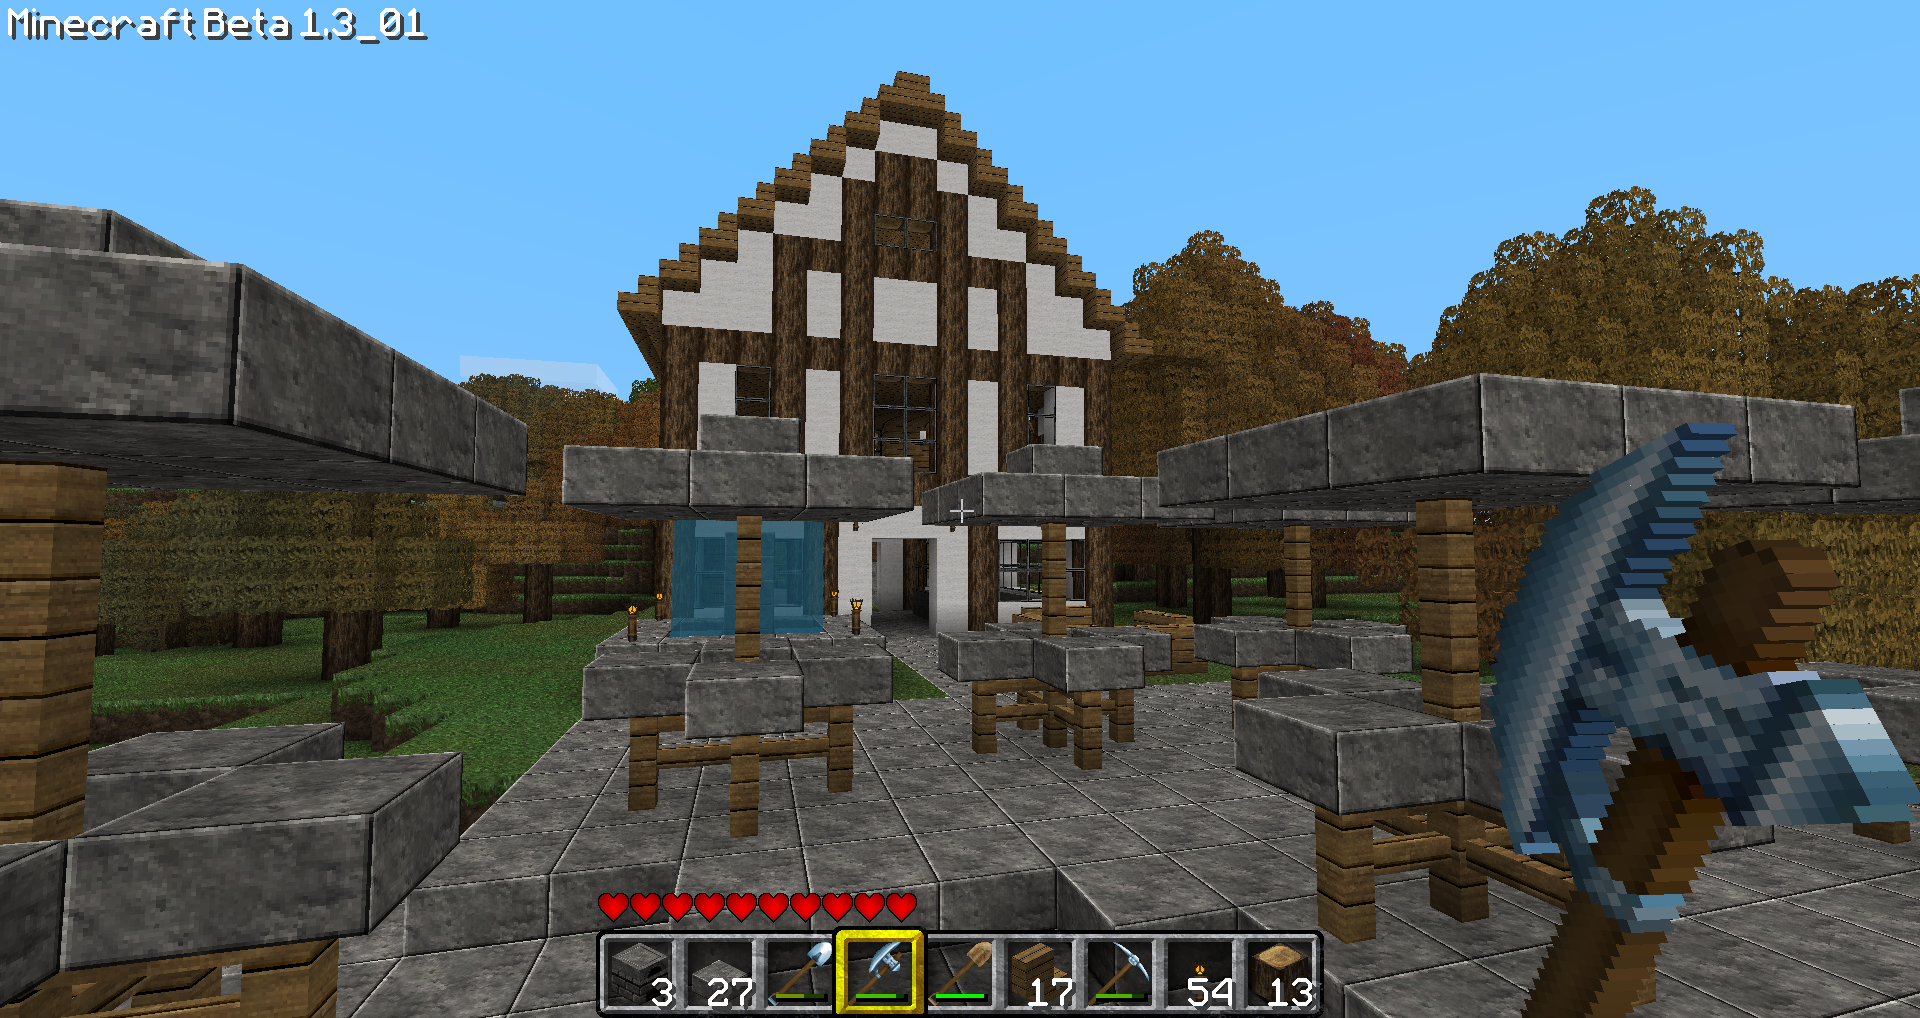 Minecraftdesigns - Minecraft Design Frage] My Cafe